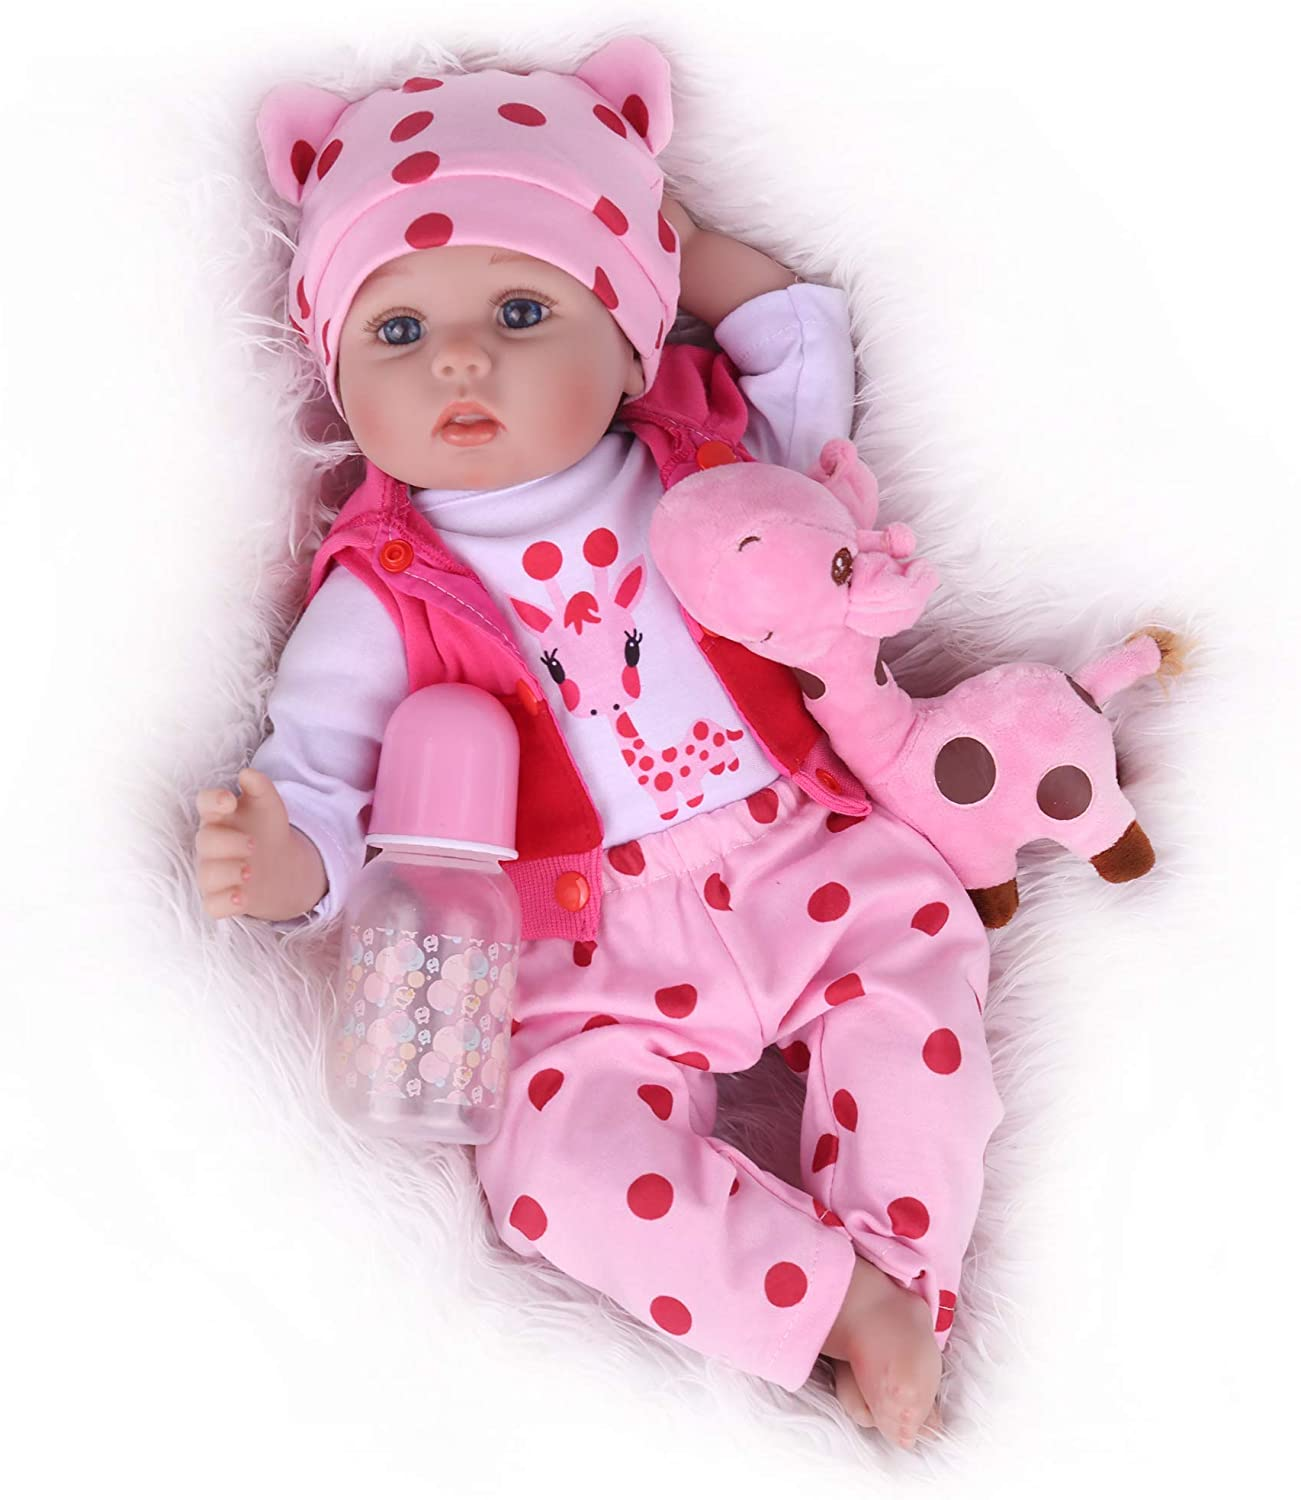 CHAREX Realistic Reborn Baby Dolls,18 inch Reborn Girl Lucy with Giraffe Gift Set for Kids Children Age 3+